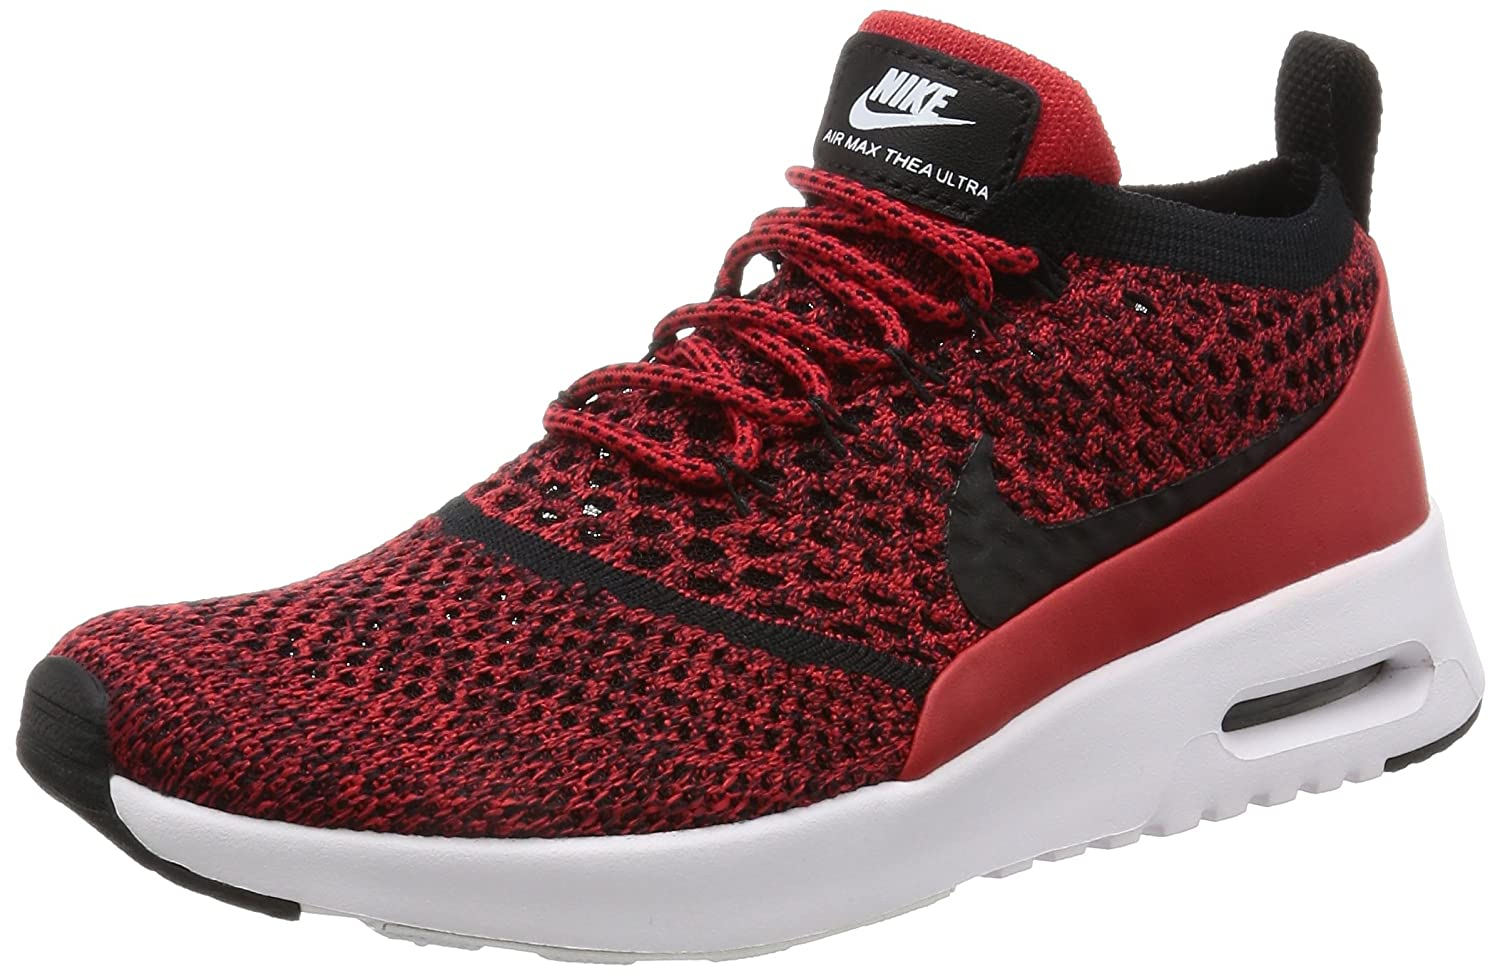 NIKE Women's Air Max Thea Ultra FK Running Shoe B005A95H0Y 7 B(M) US|University Red / Black-white